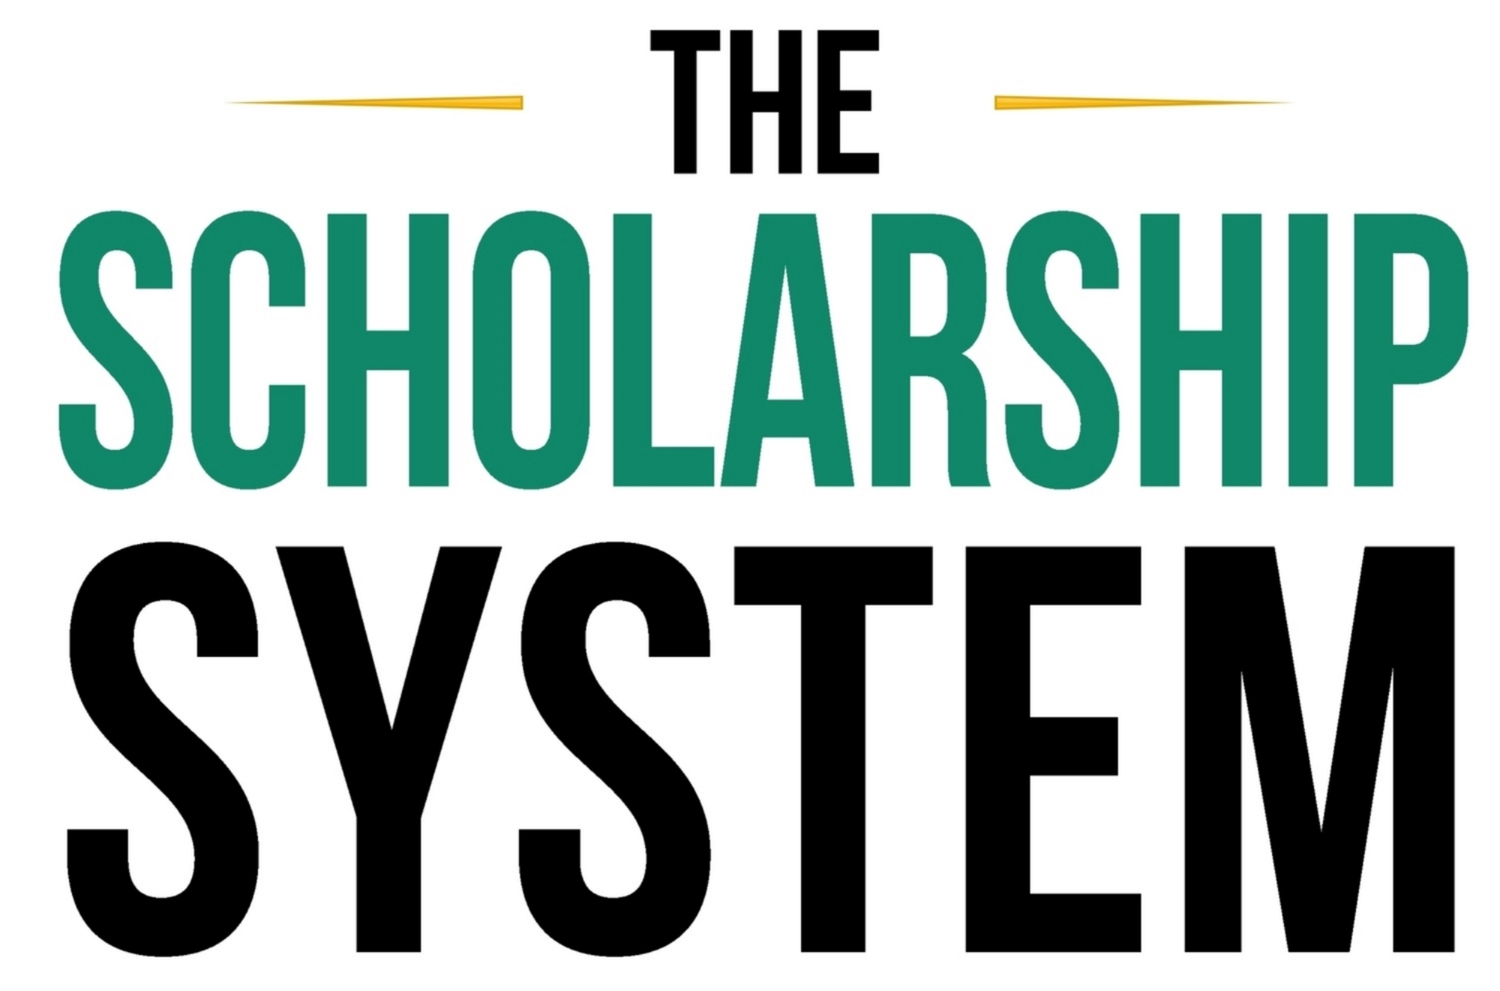 Can I still get a scholarship? Or should I stick to grants and loans?